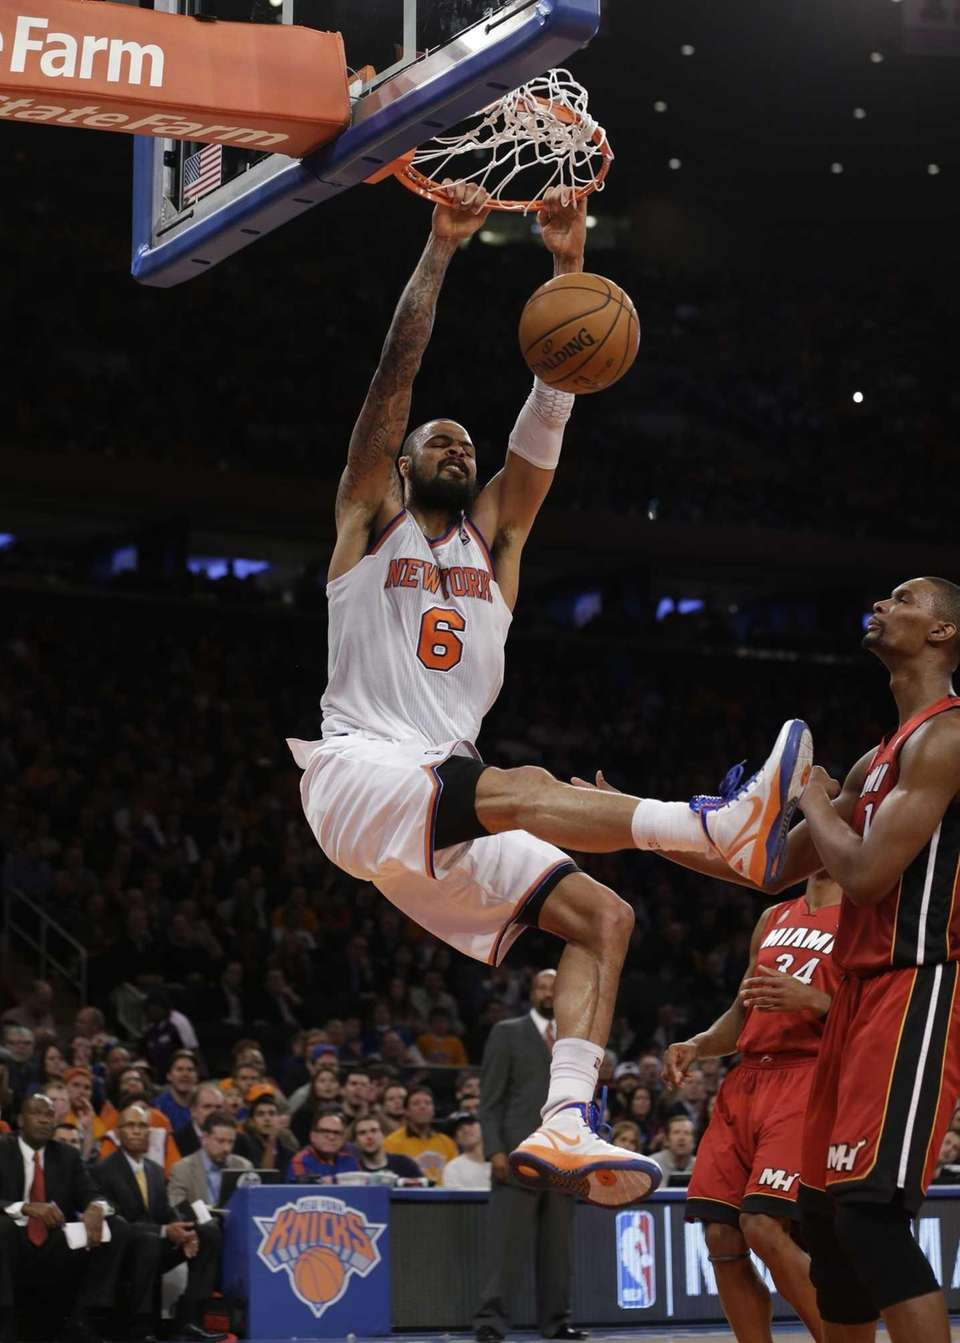 Tyson Chandler dunks in front of Miami Heat